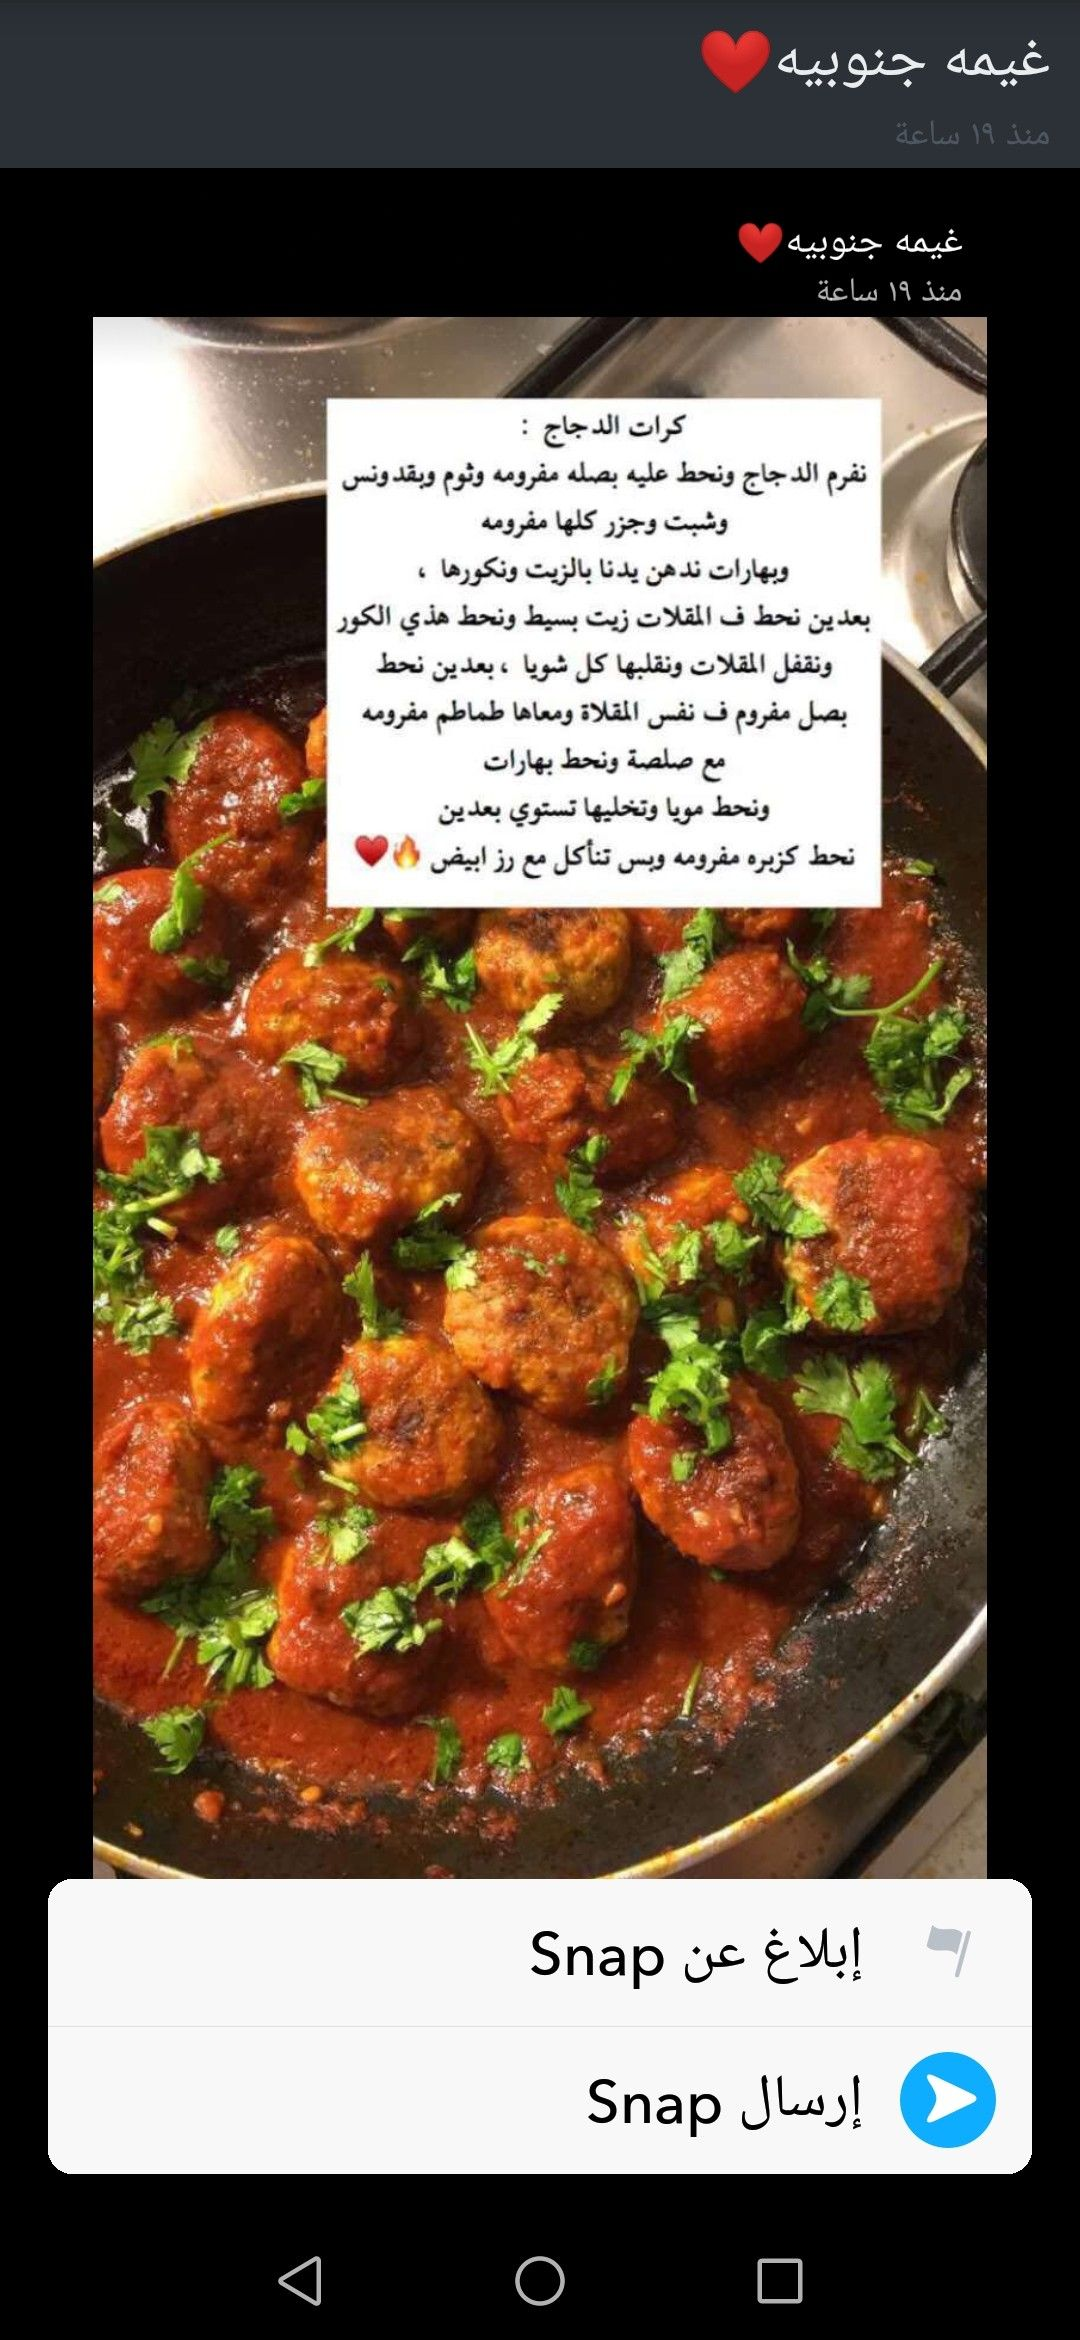 Pin By بسومة الودودة On طبخاتي Cookout Food Food Dishes Cooking Recipes